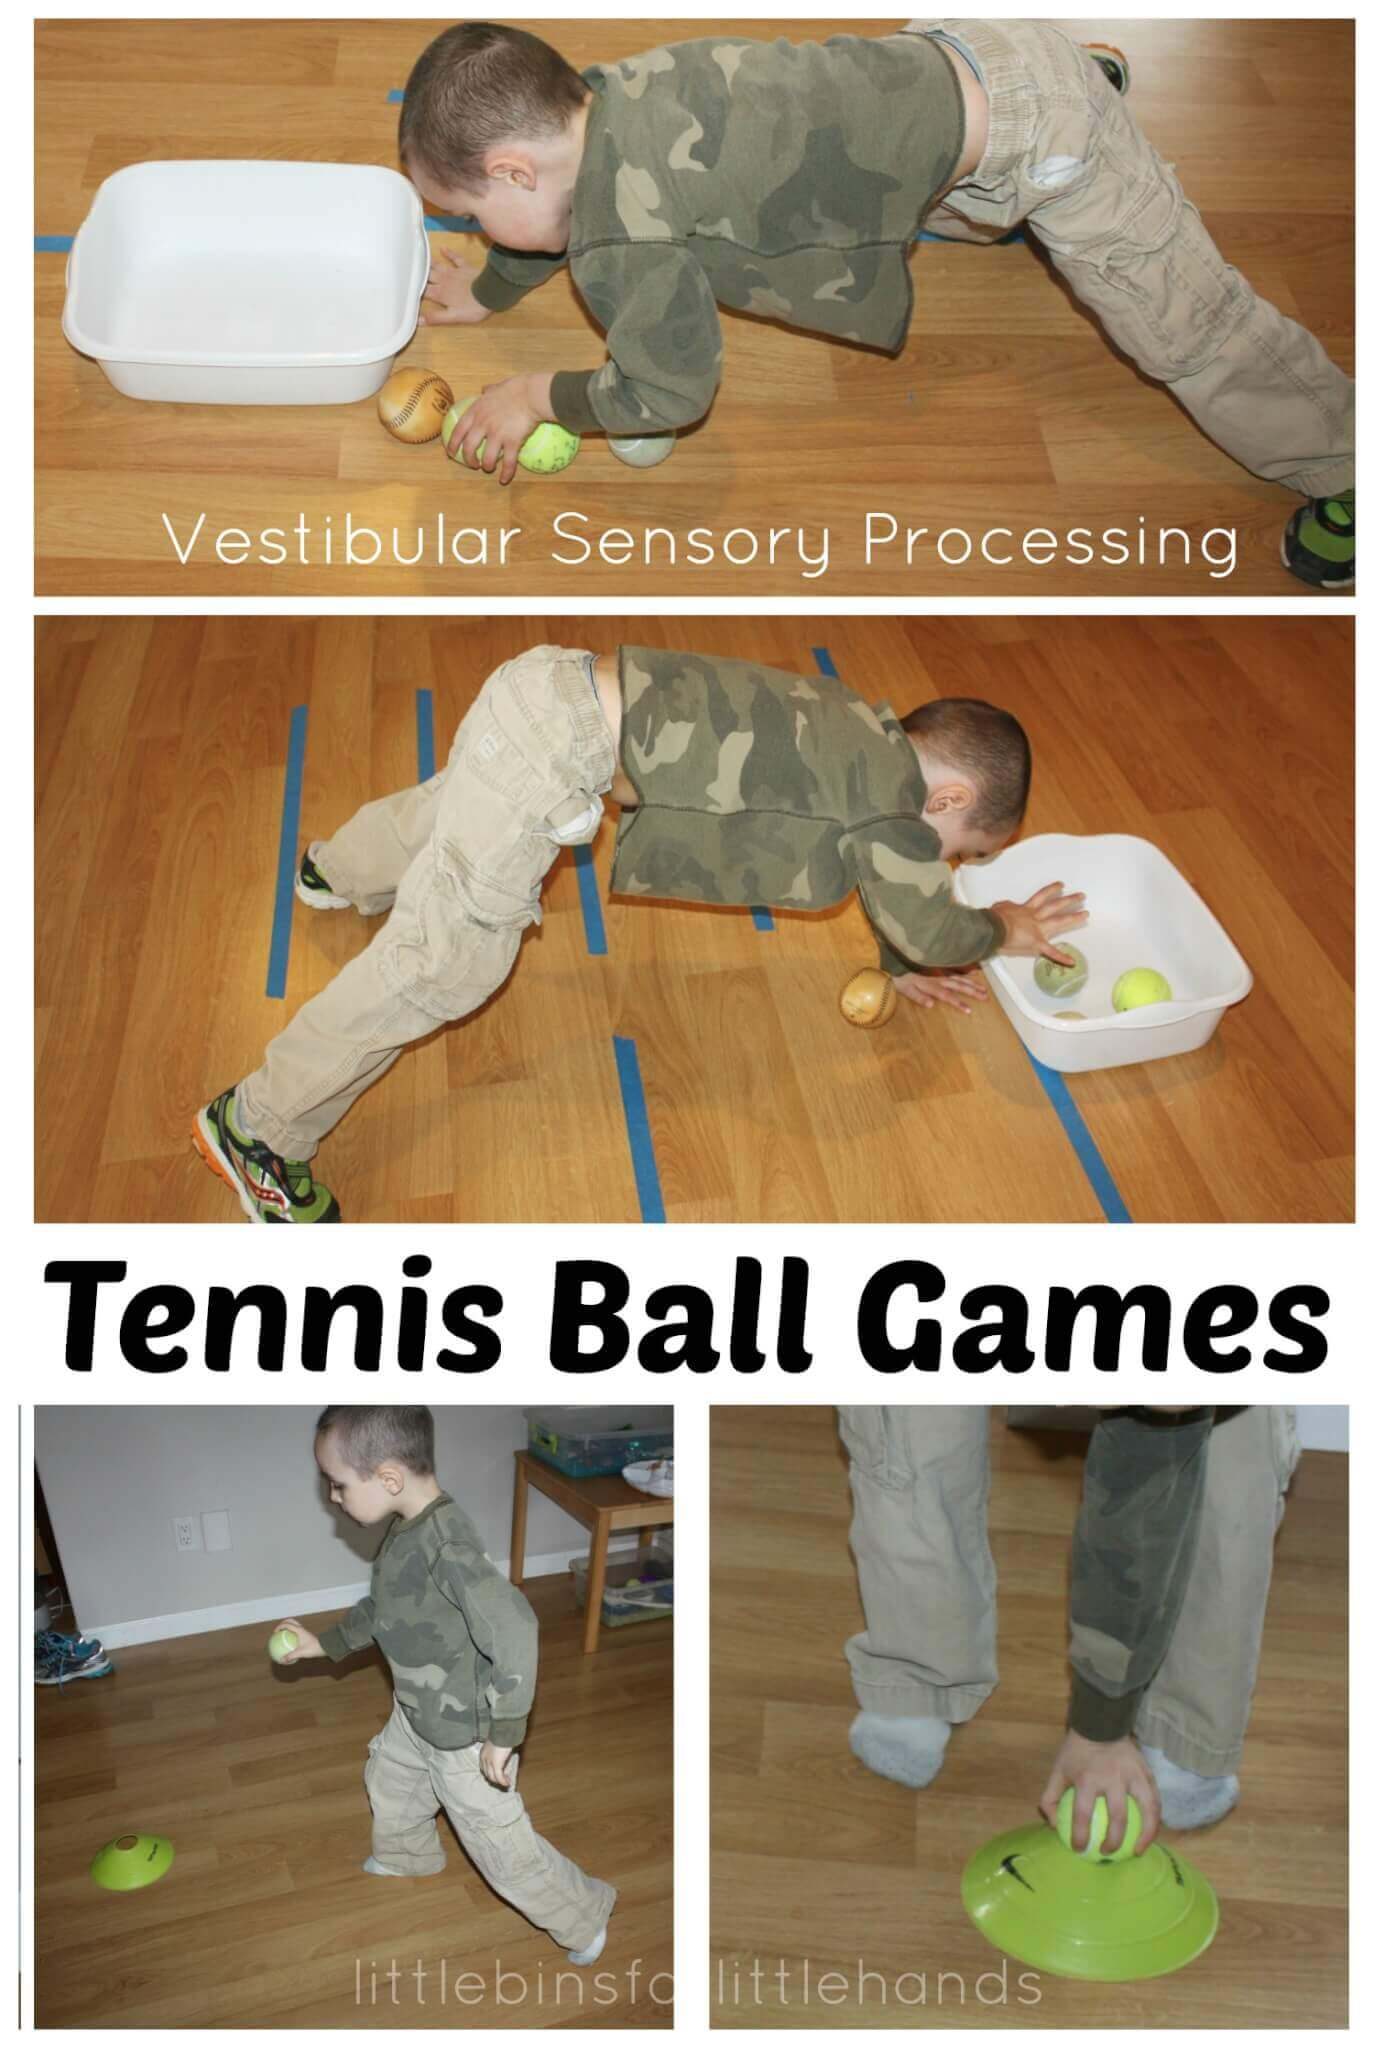 Tennis Ball Games